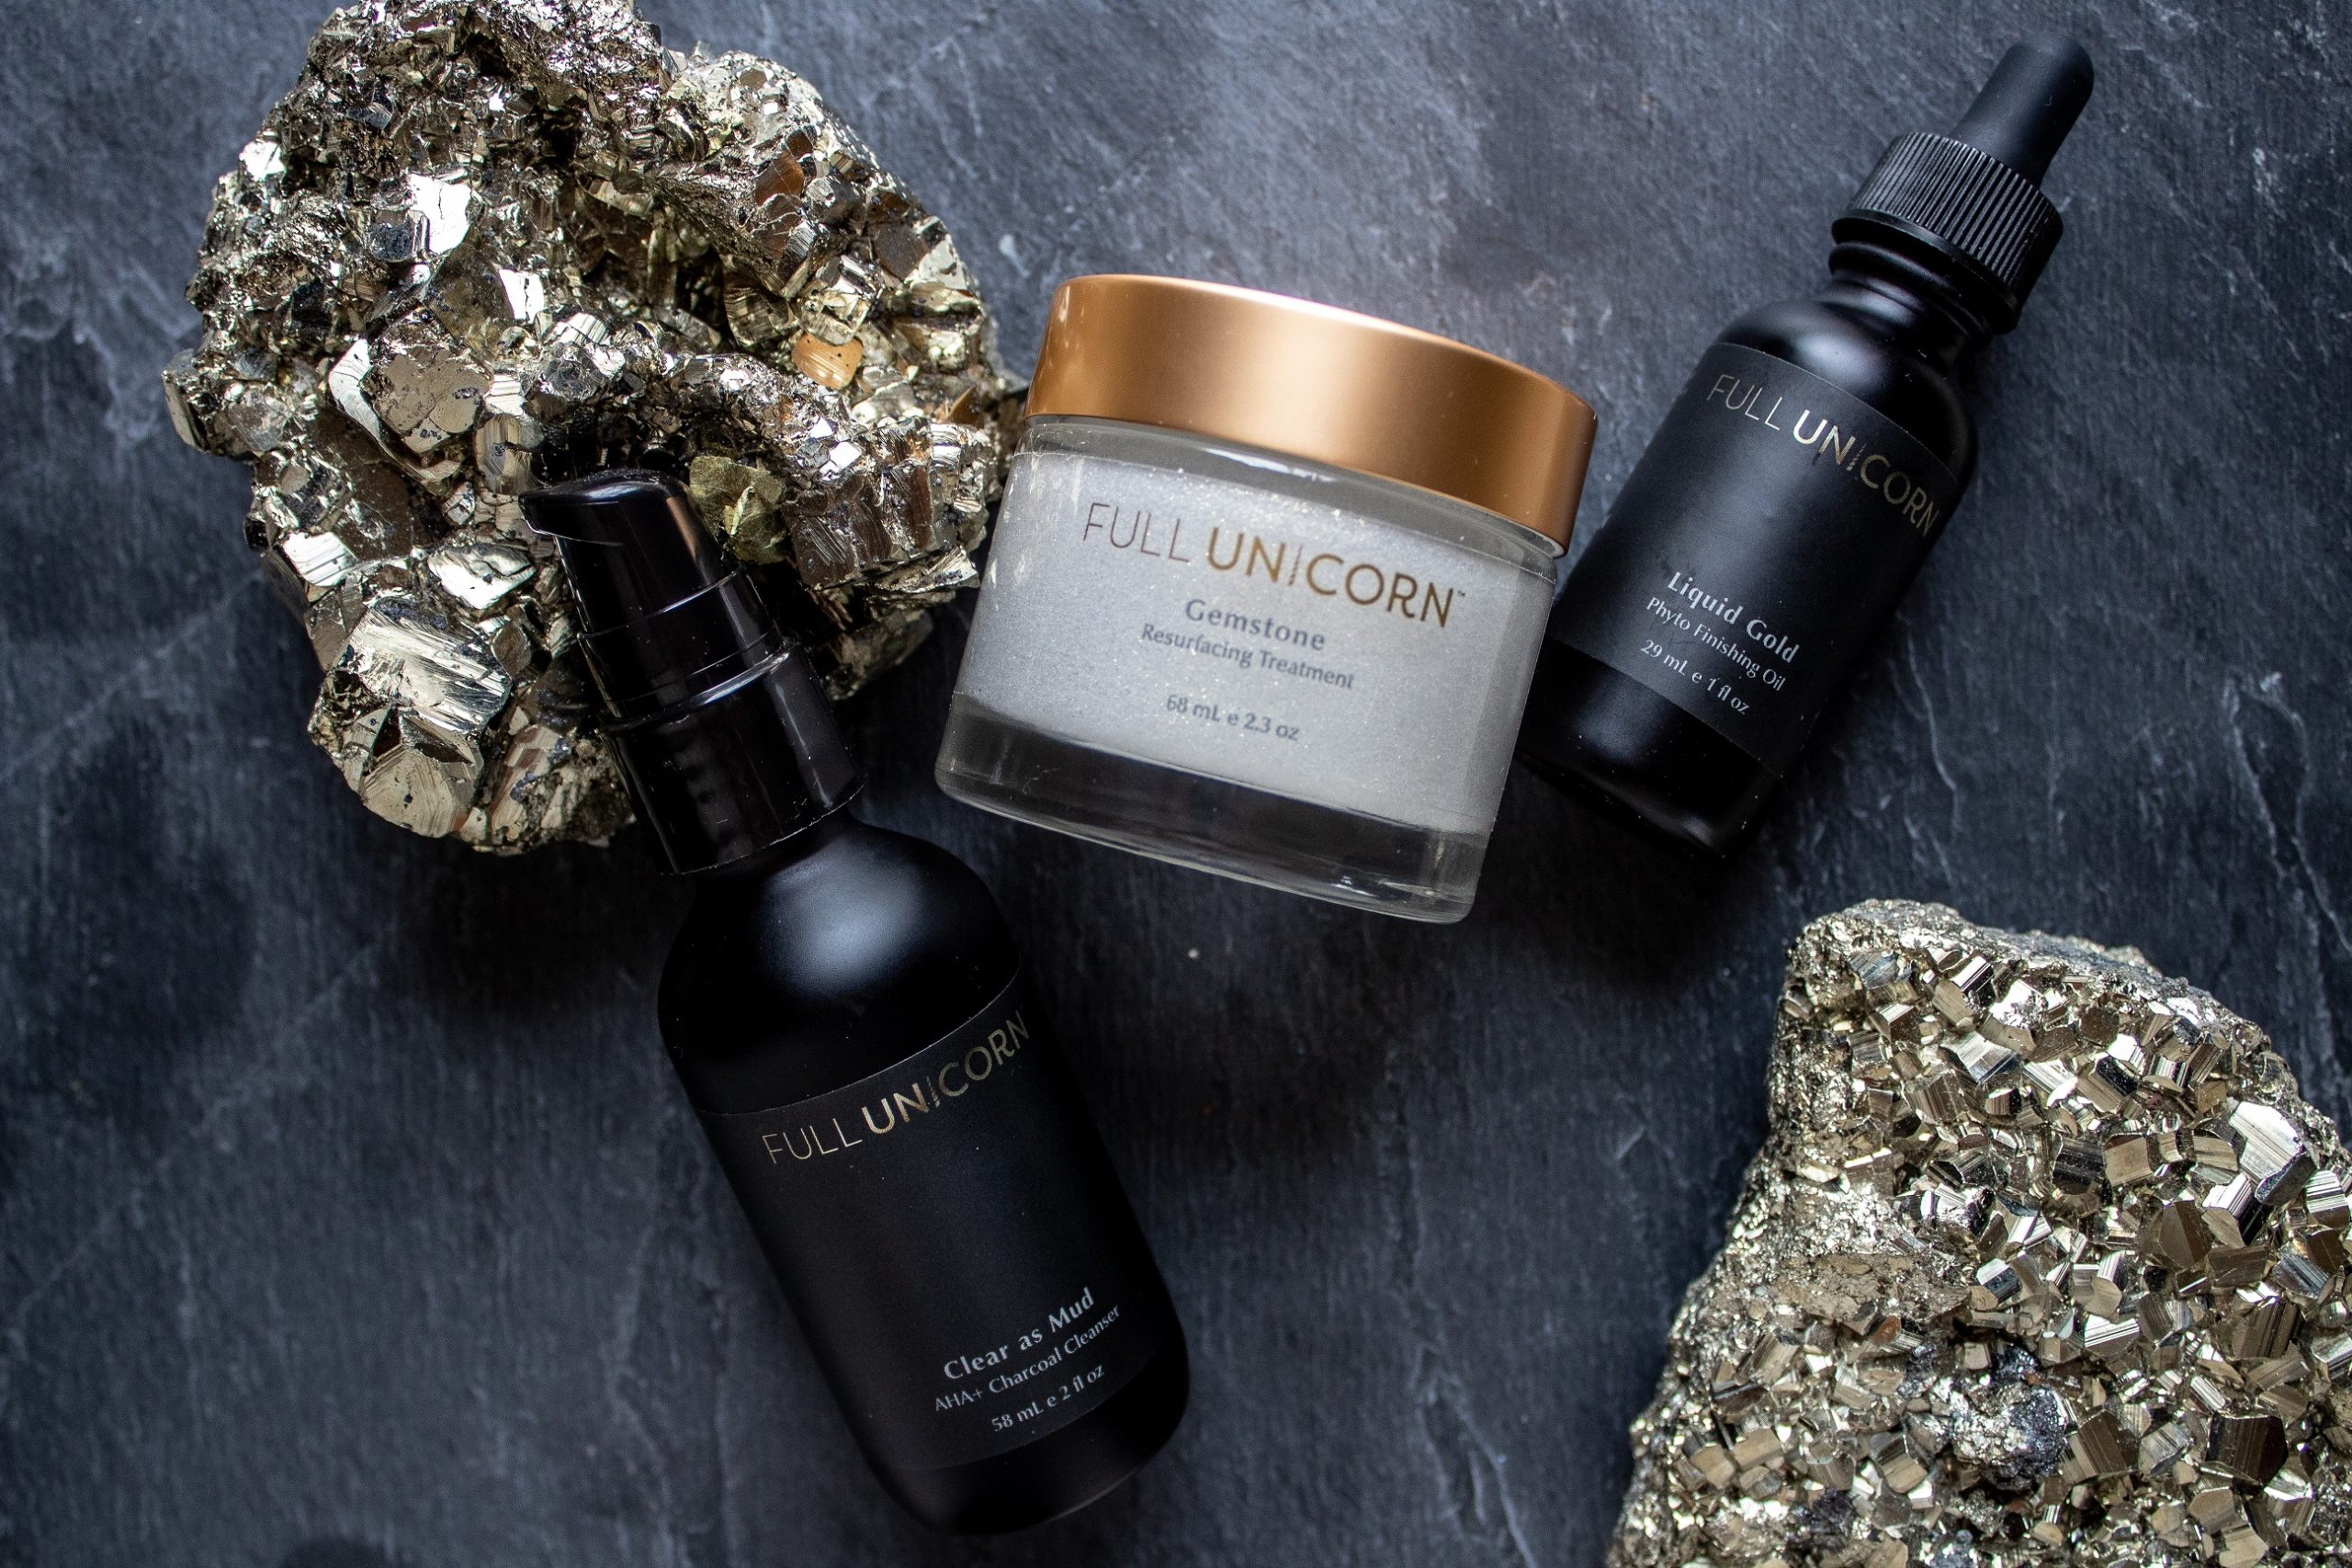 Full Unicorn Radiant Facial with gold pyrite on slate